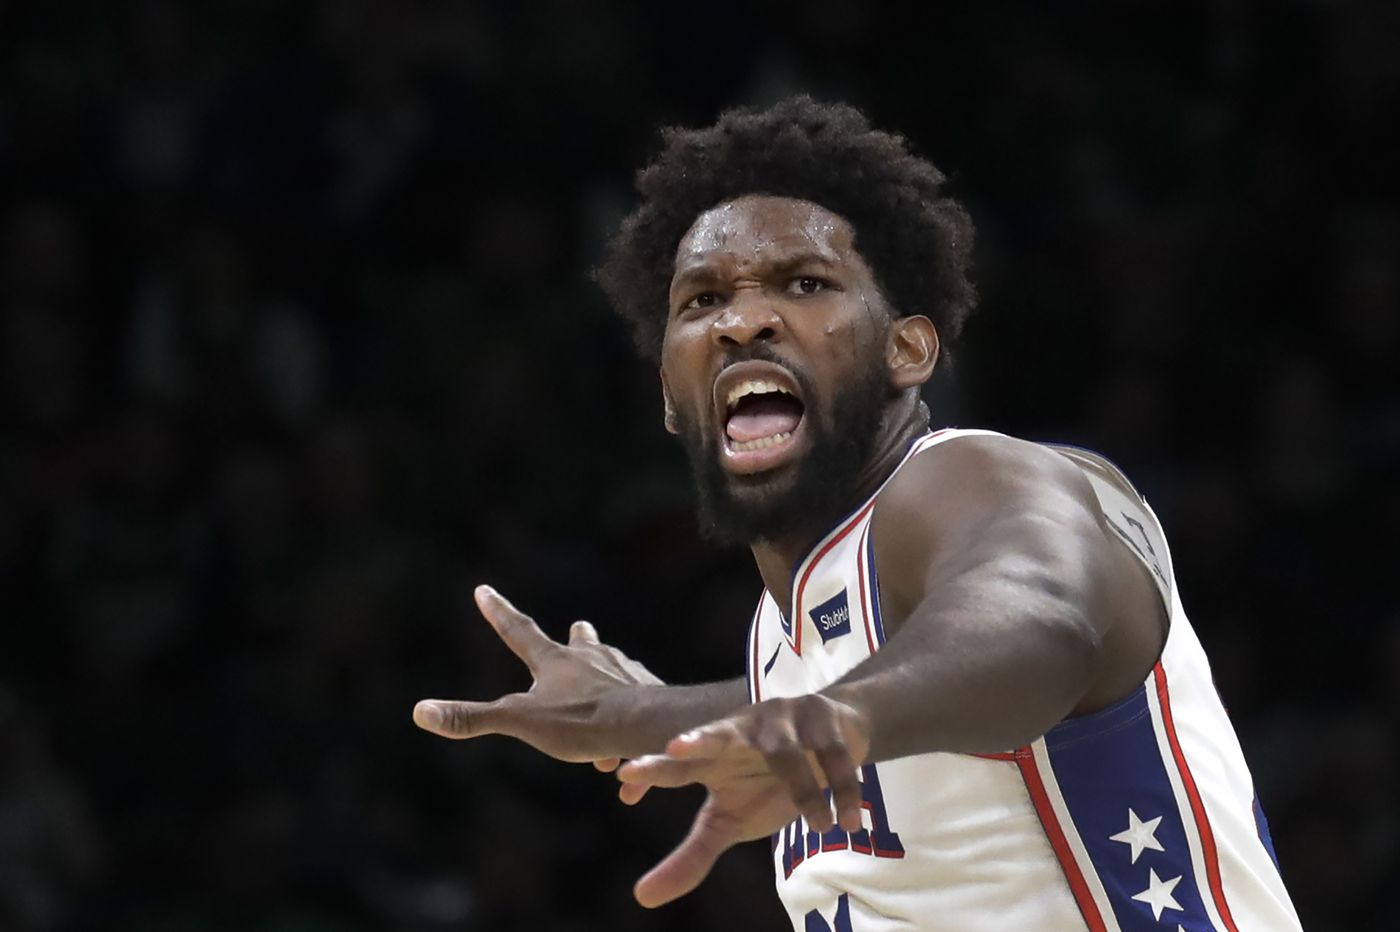 Sixers podcast: Discussing Joel Embiid answering critics, Thursday's unsung heroes, JJ Redick's return